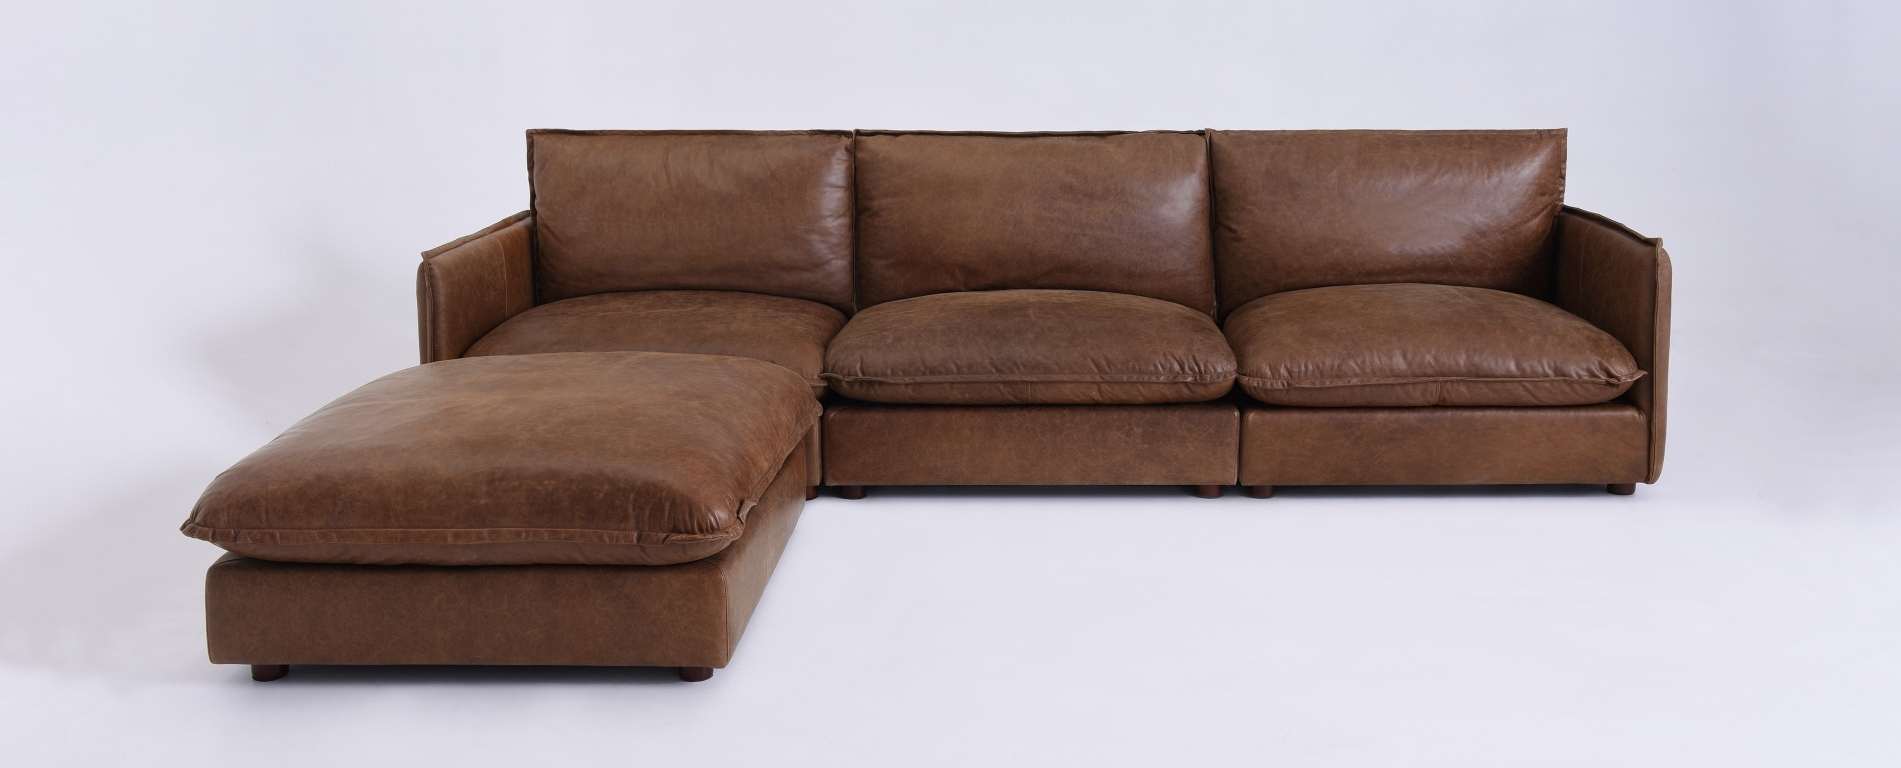 Popular Neva Modular Leather Chaise Sectional In Leather Chaise Sectionals (View 12 of 15)